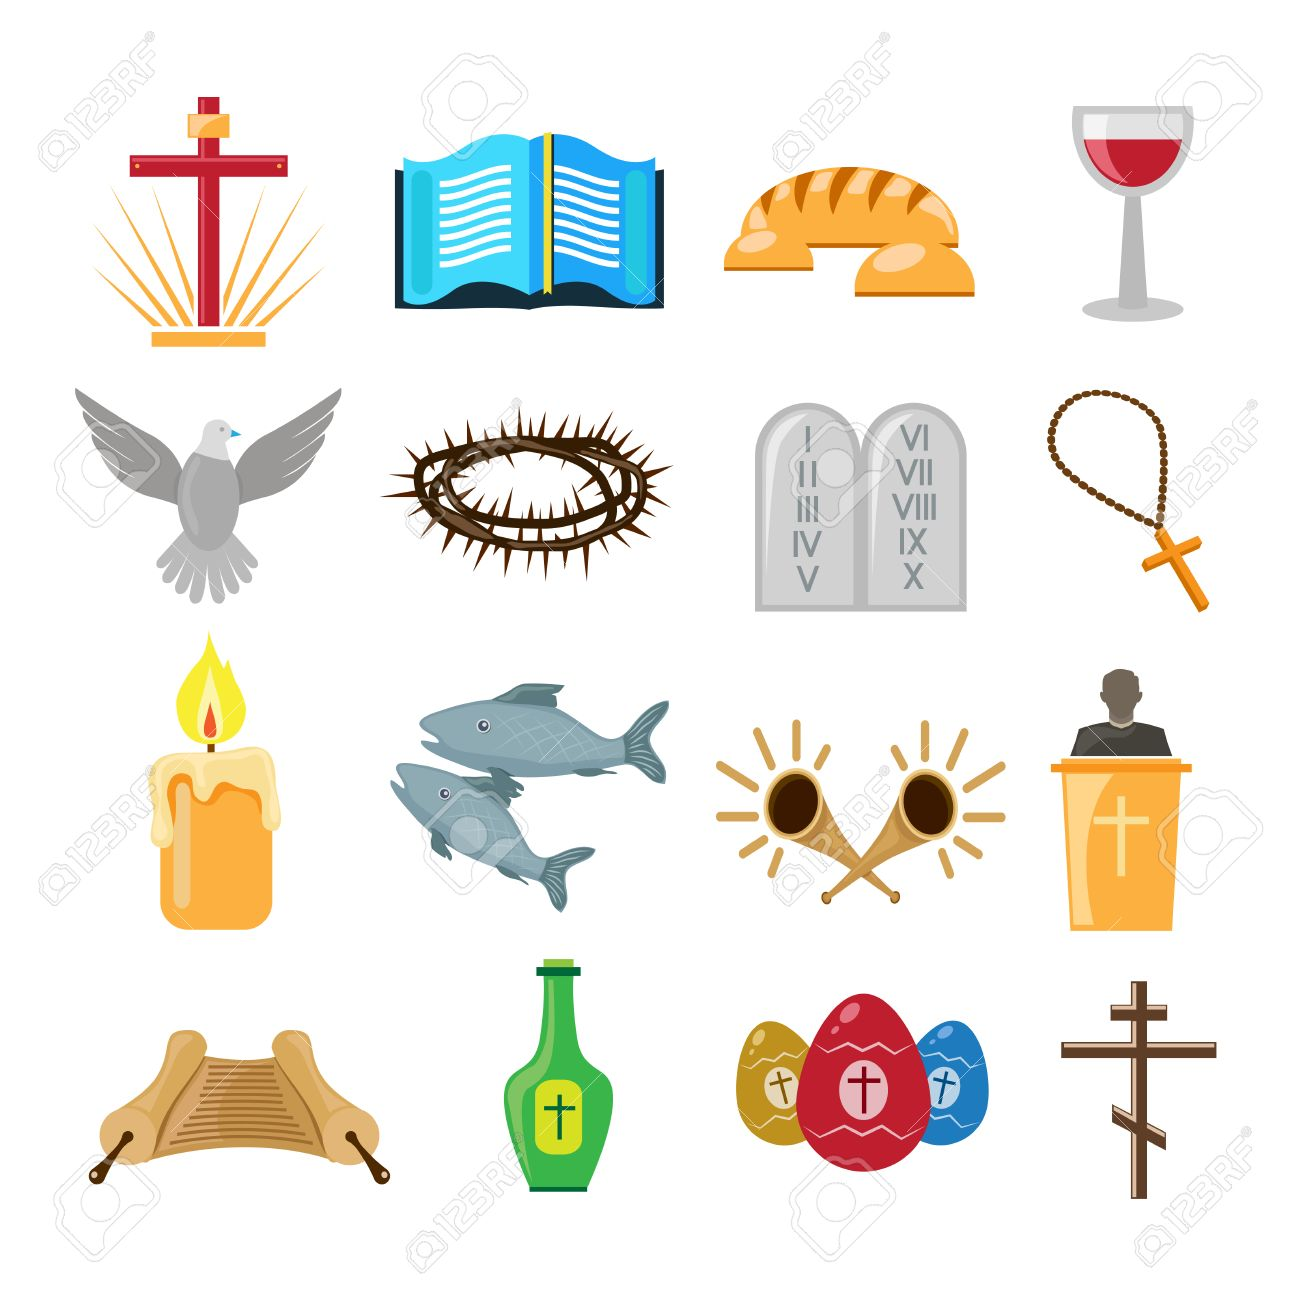 Christian church traditional symbols icons set isolated vector christian church traditional symbols icons set isolated vector illustration stock vector 31726642 buycottarizona Gallery